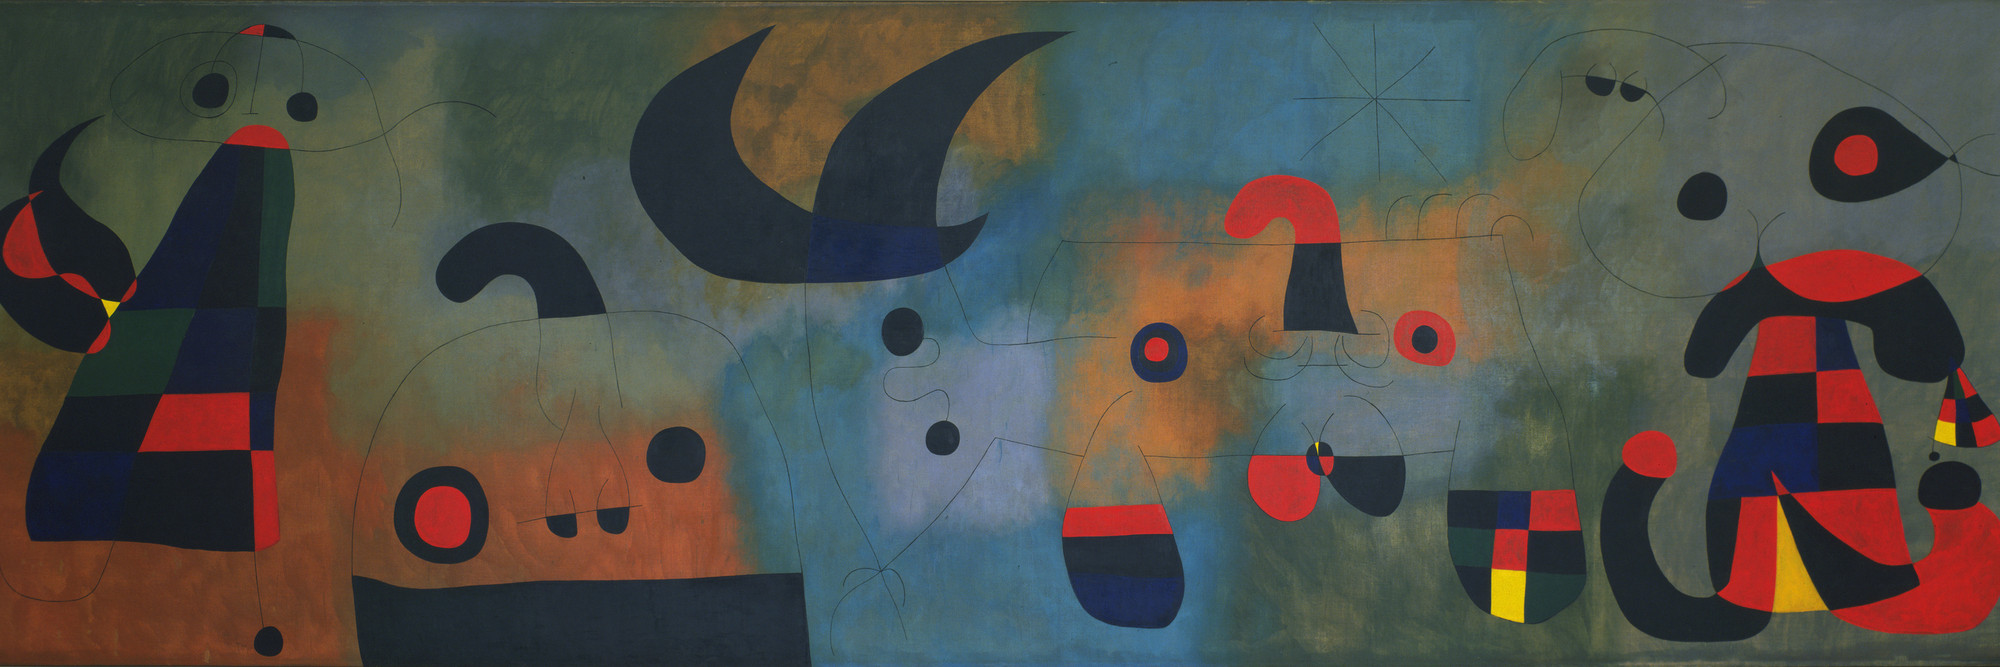 Joan Miró. Mural Painting. Barcelona, October 18, 1950–January 26, 1951. Oil on canvas, 6′ 2 3/4″ × 19′ 5 3/4″ (188.8 × 593.8 cm). Mrs. Simon Guggenheim Fund. © 2016 Successió Miró / Artists Rights Society (ARS), New York / ADAGP, Paris